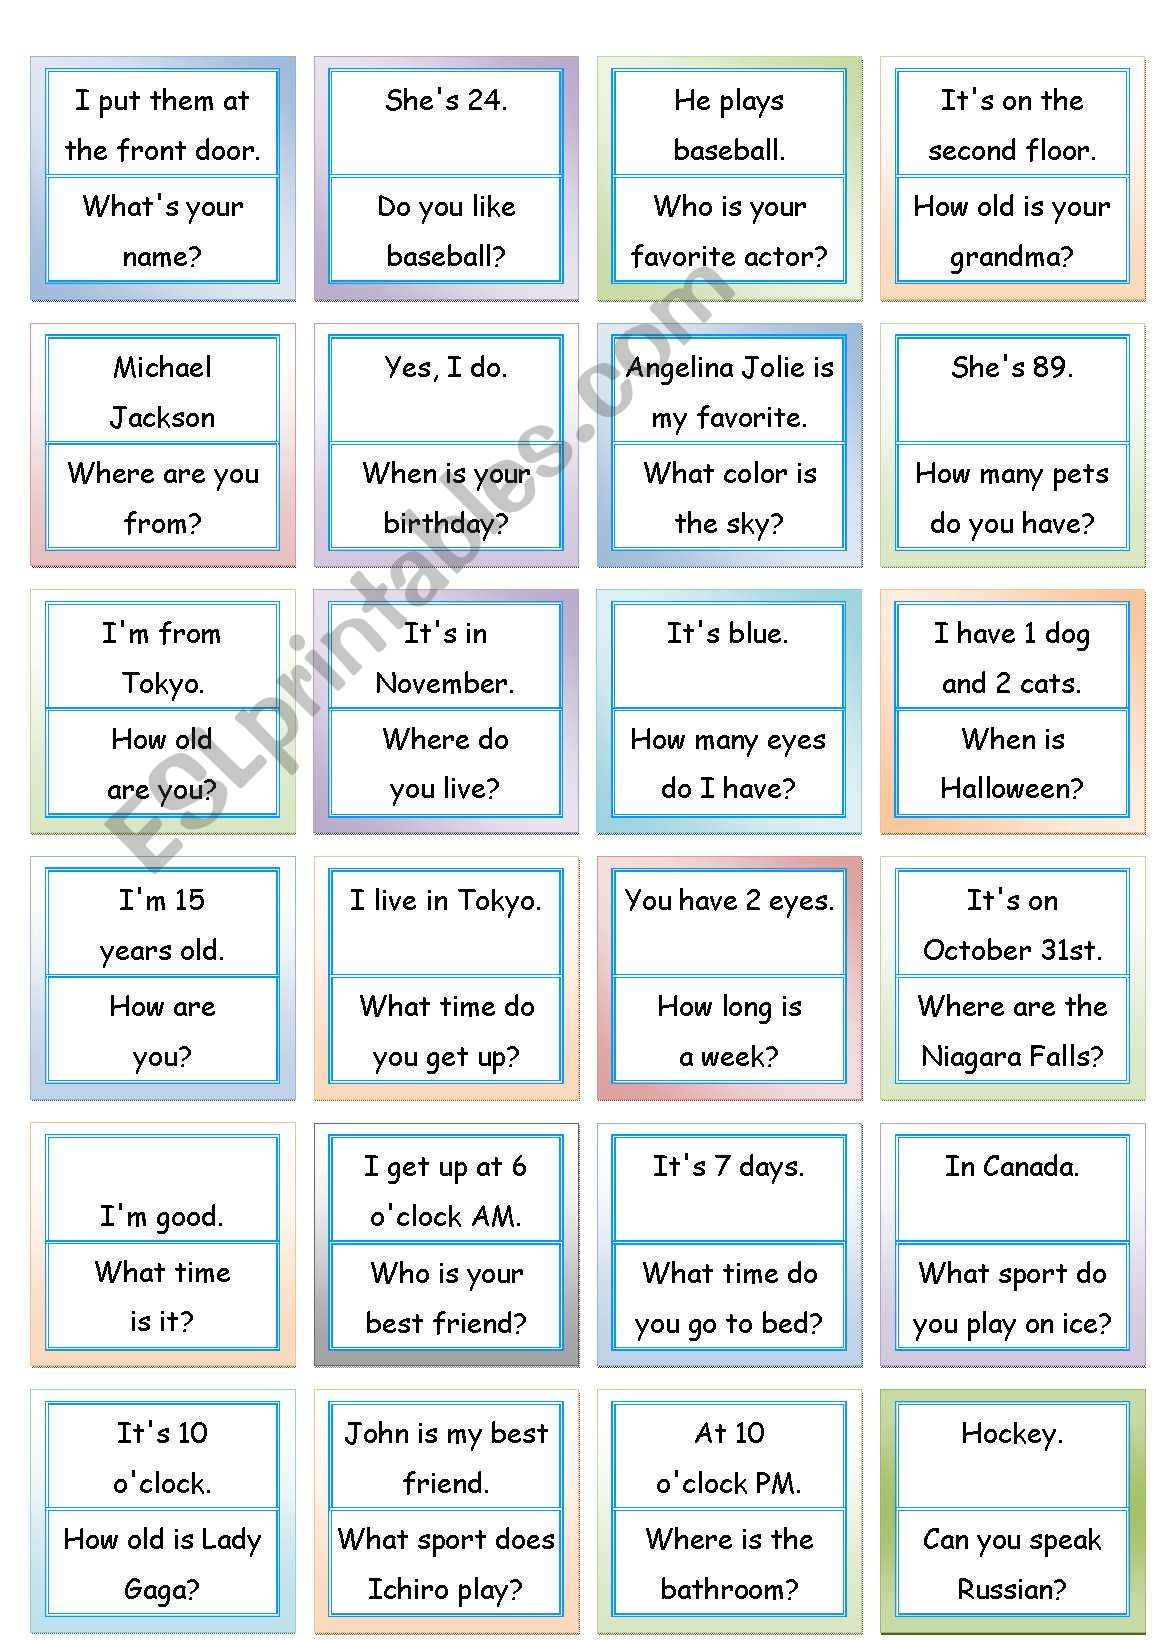 Loop Game Fun Speaking Activity 48 Cards A3 Paper